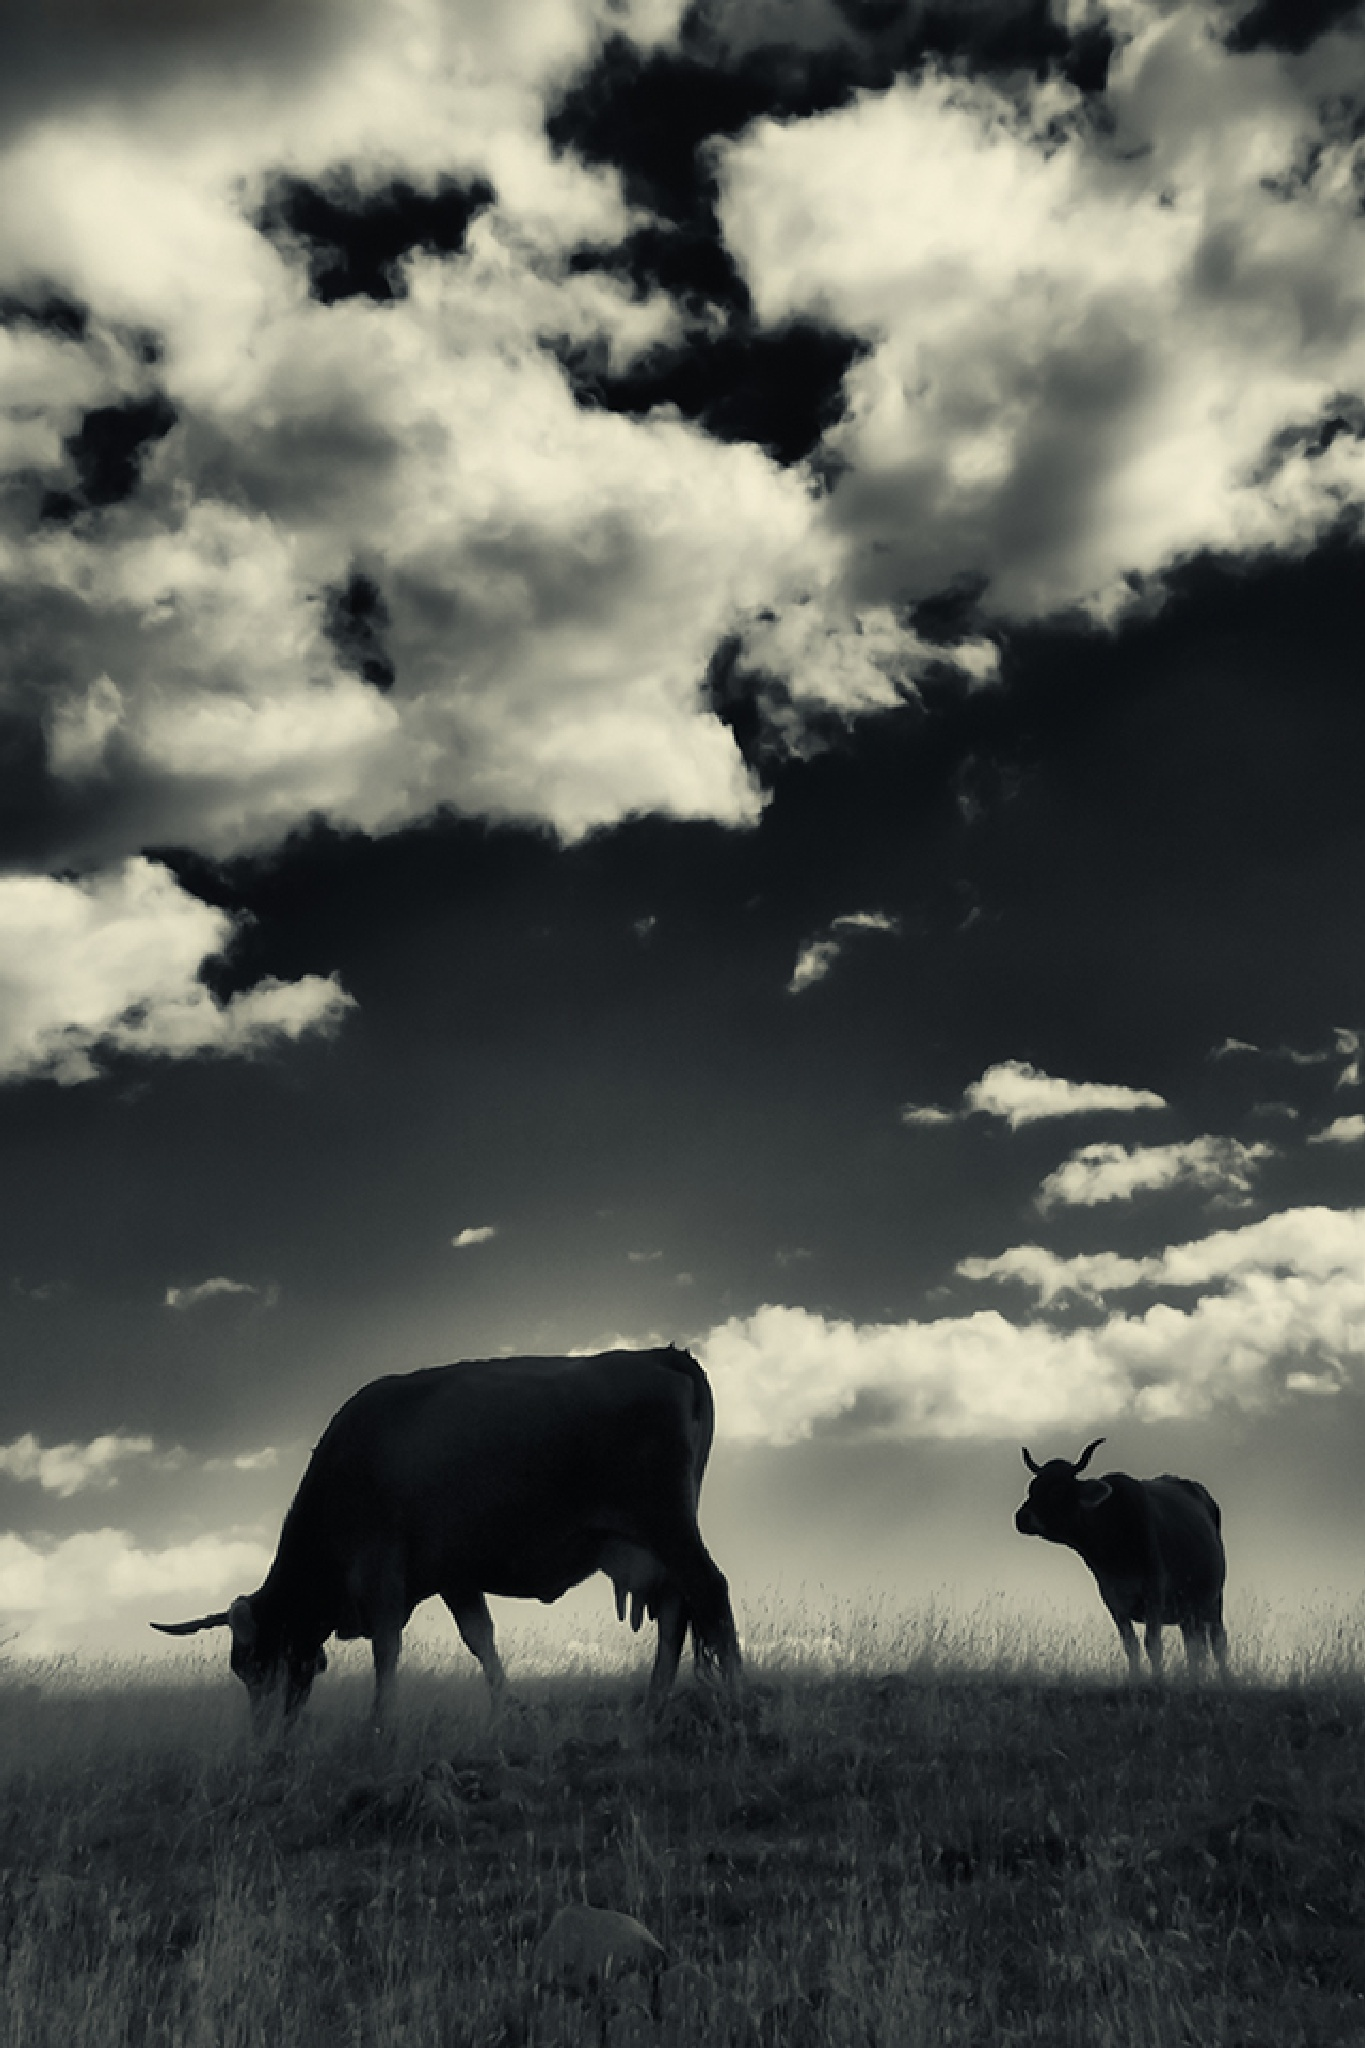 Cows by mugurelcm